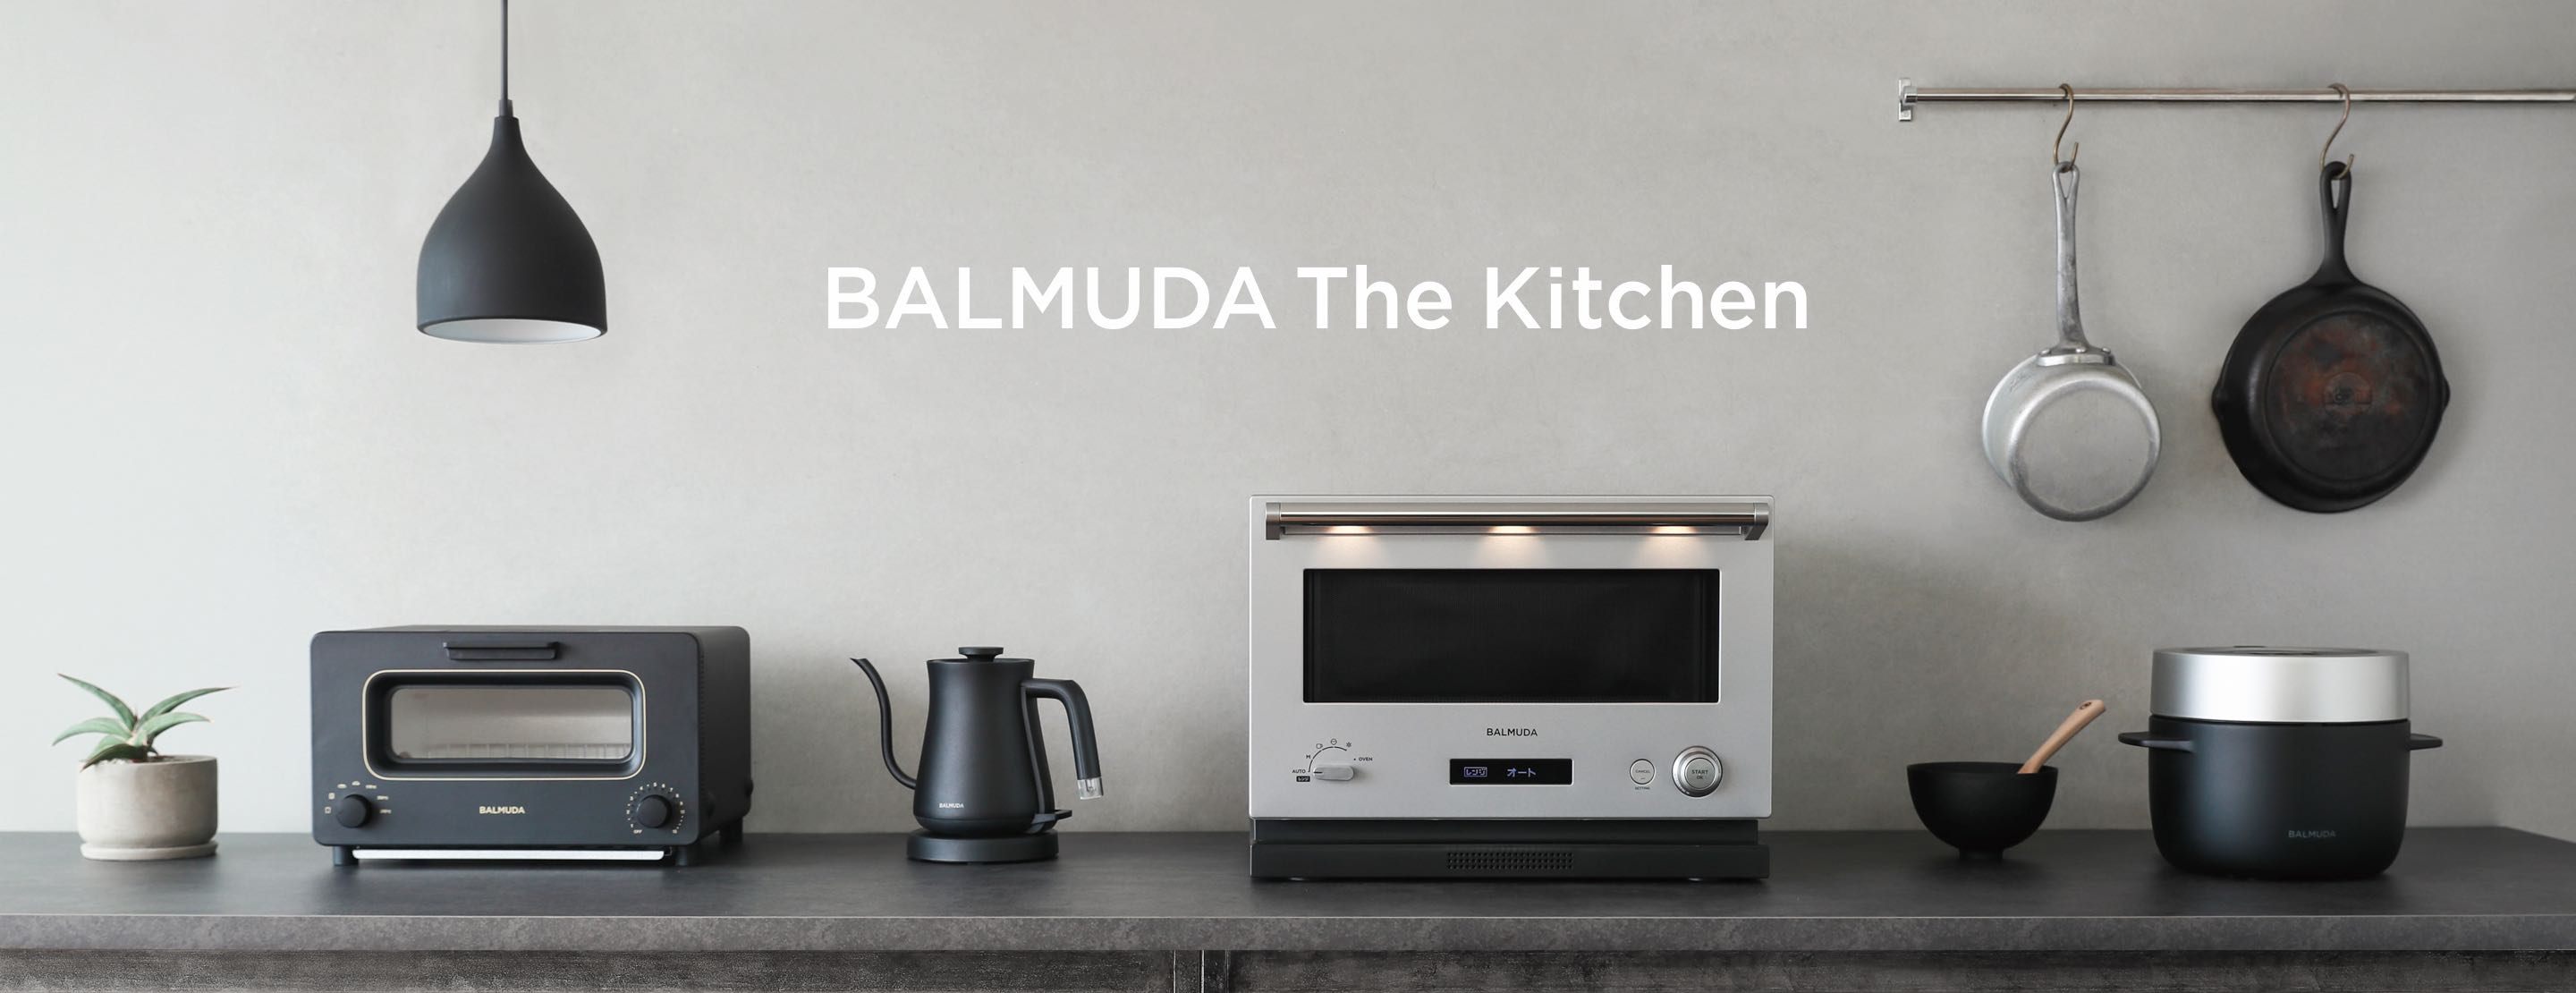 BALMUDA The Kitchen